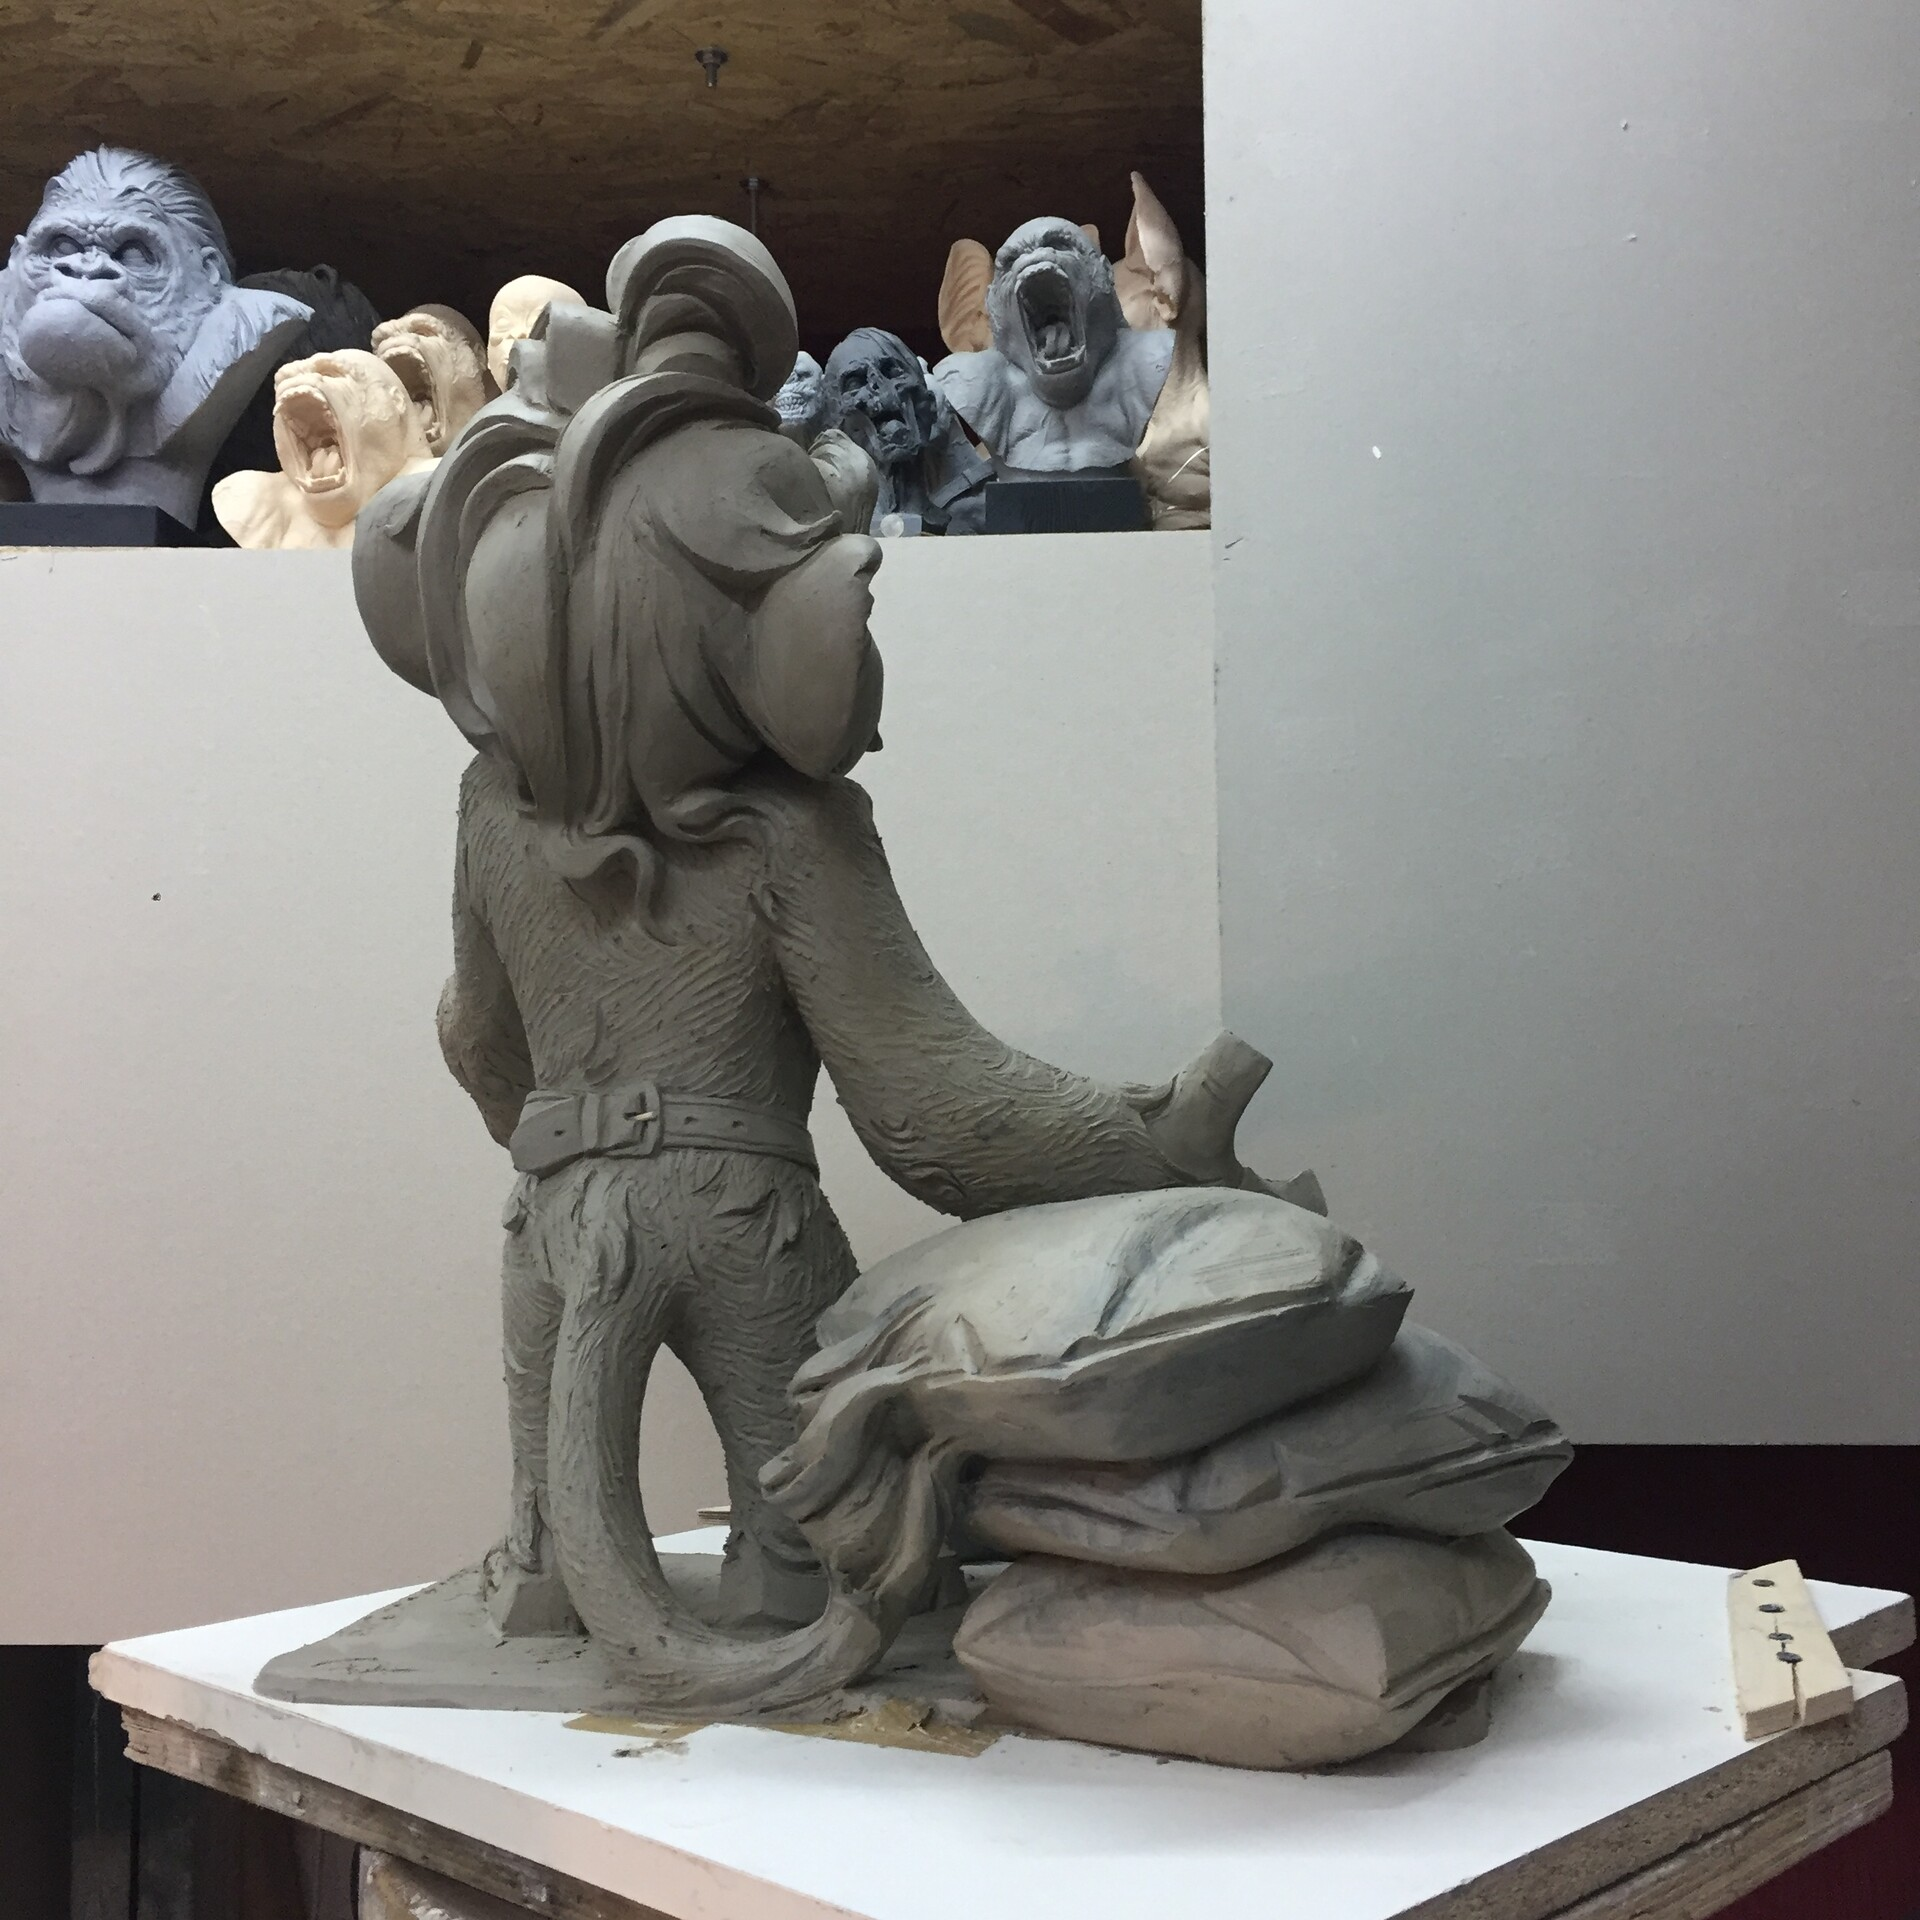 Hewelion wster clay sculpture. It is 53 cm tall.